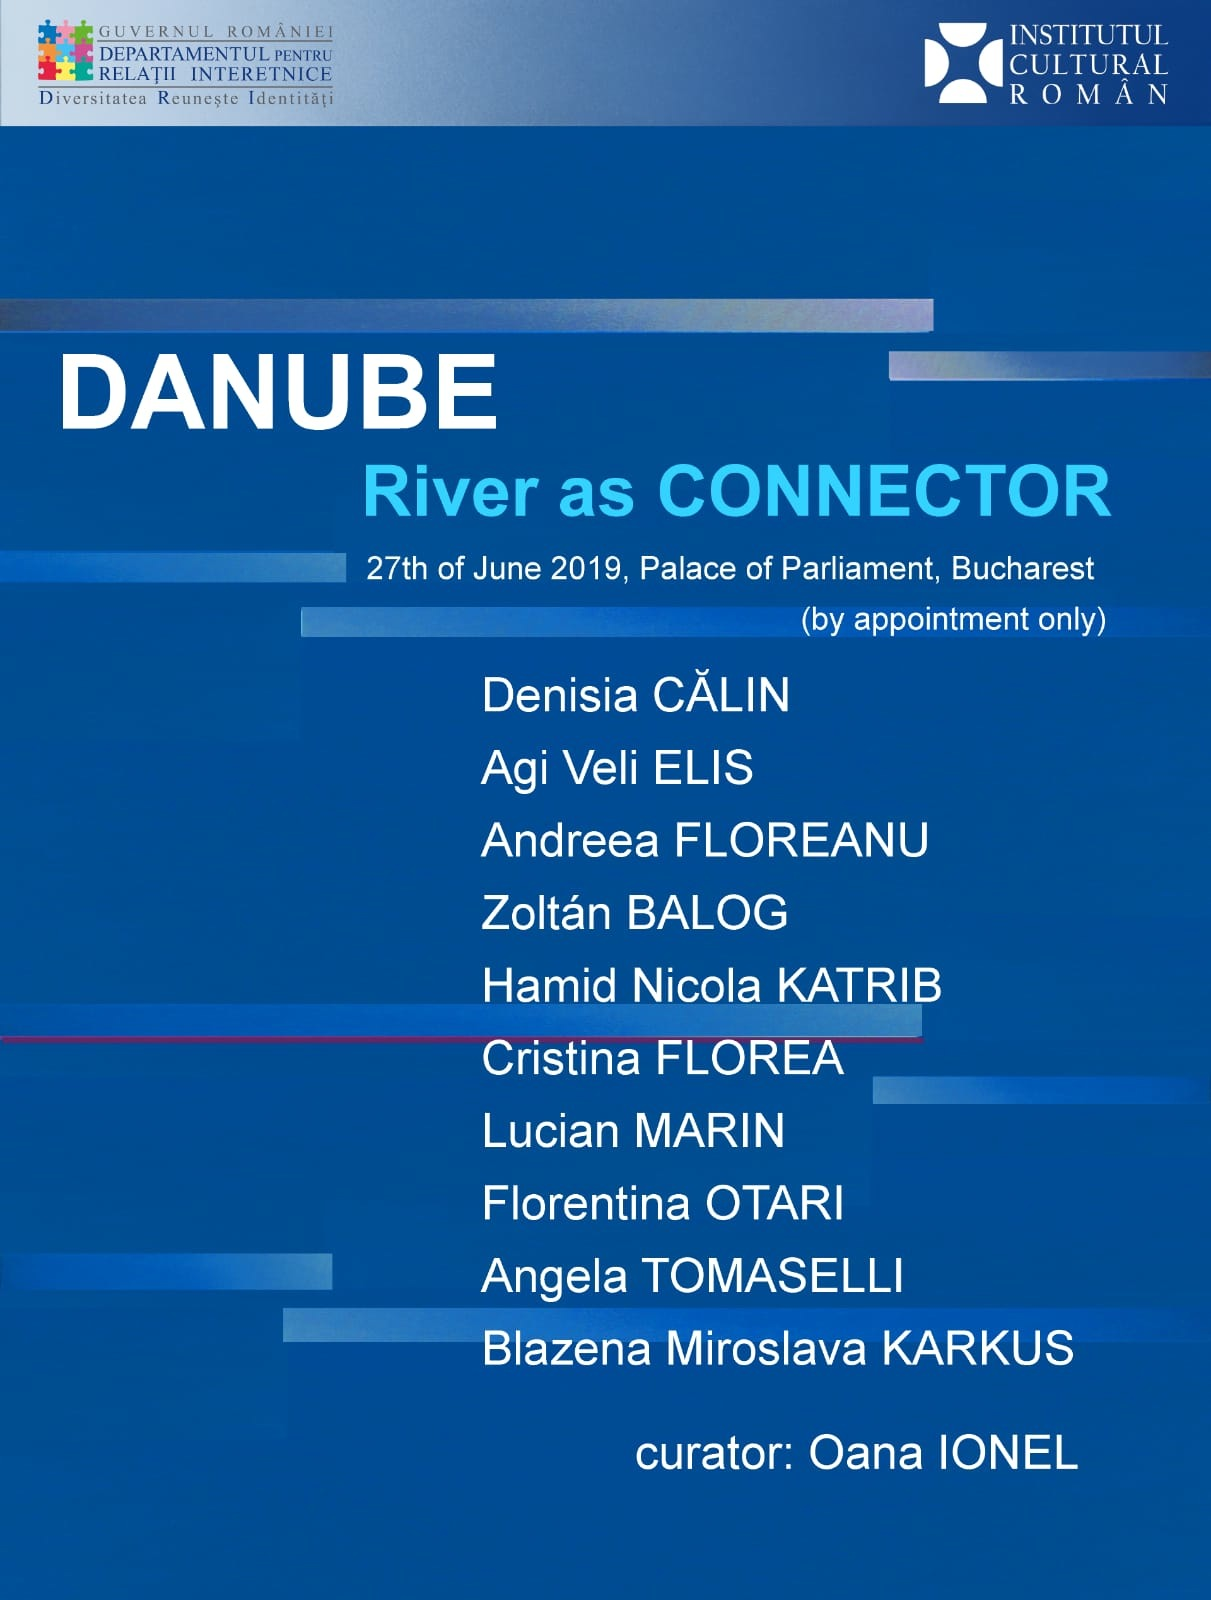 DANUBE River as Connector, group show